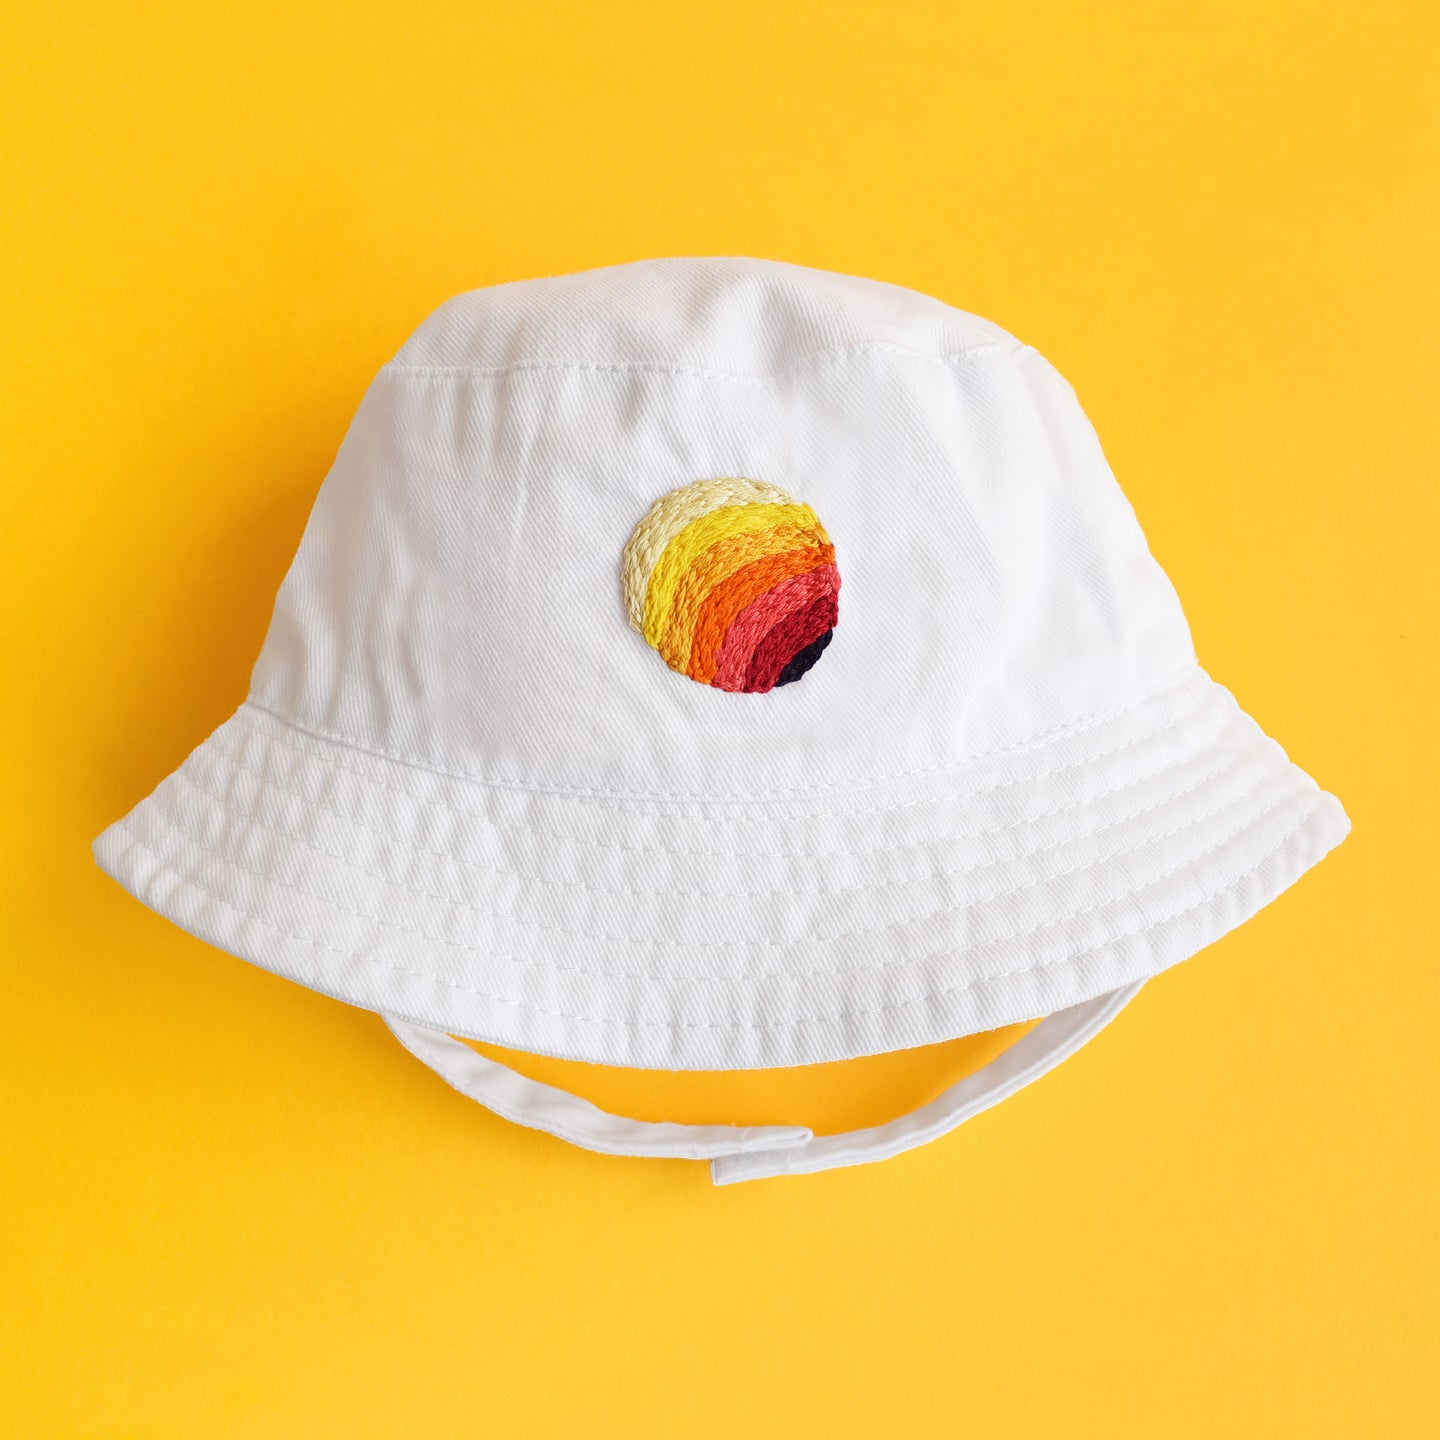 Limited Edition SOL Baby Hats - Owen Gildersleeve x Adam Williams